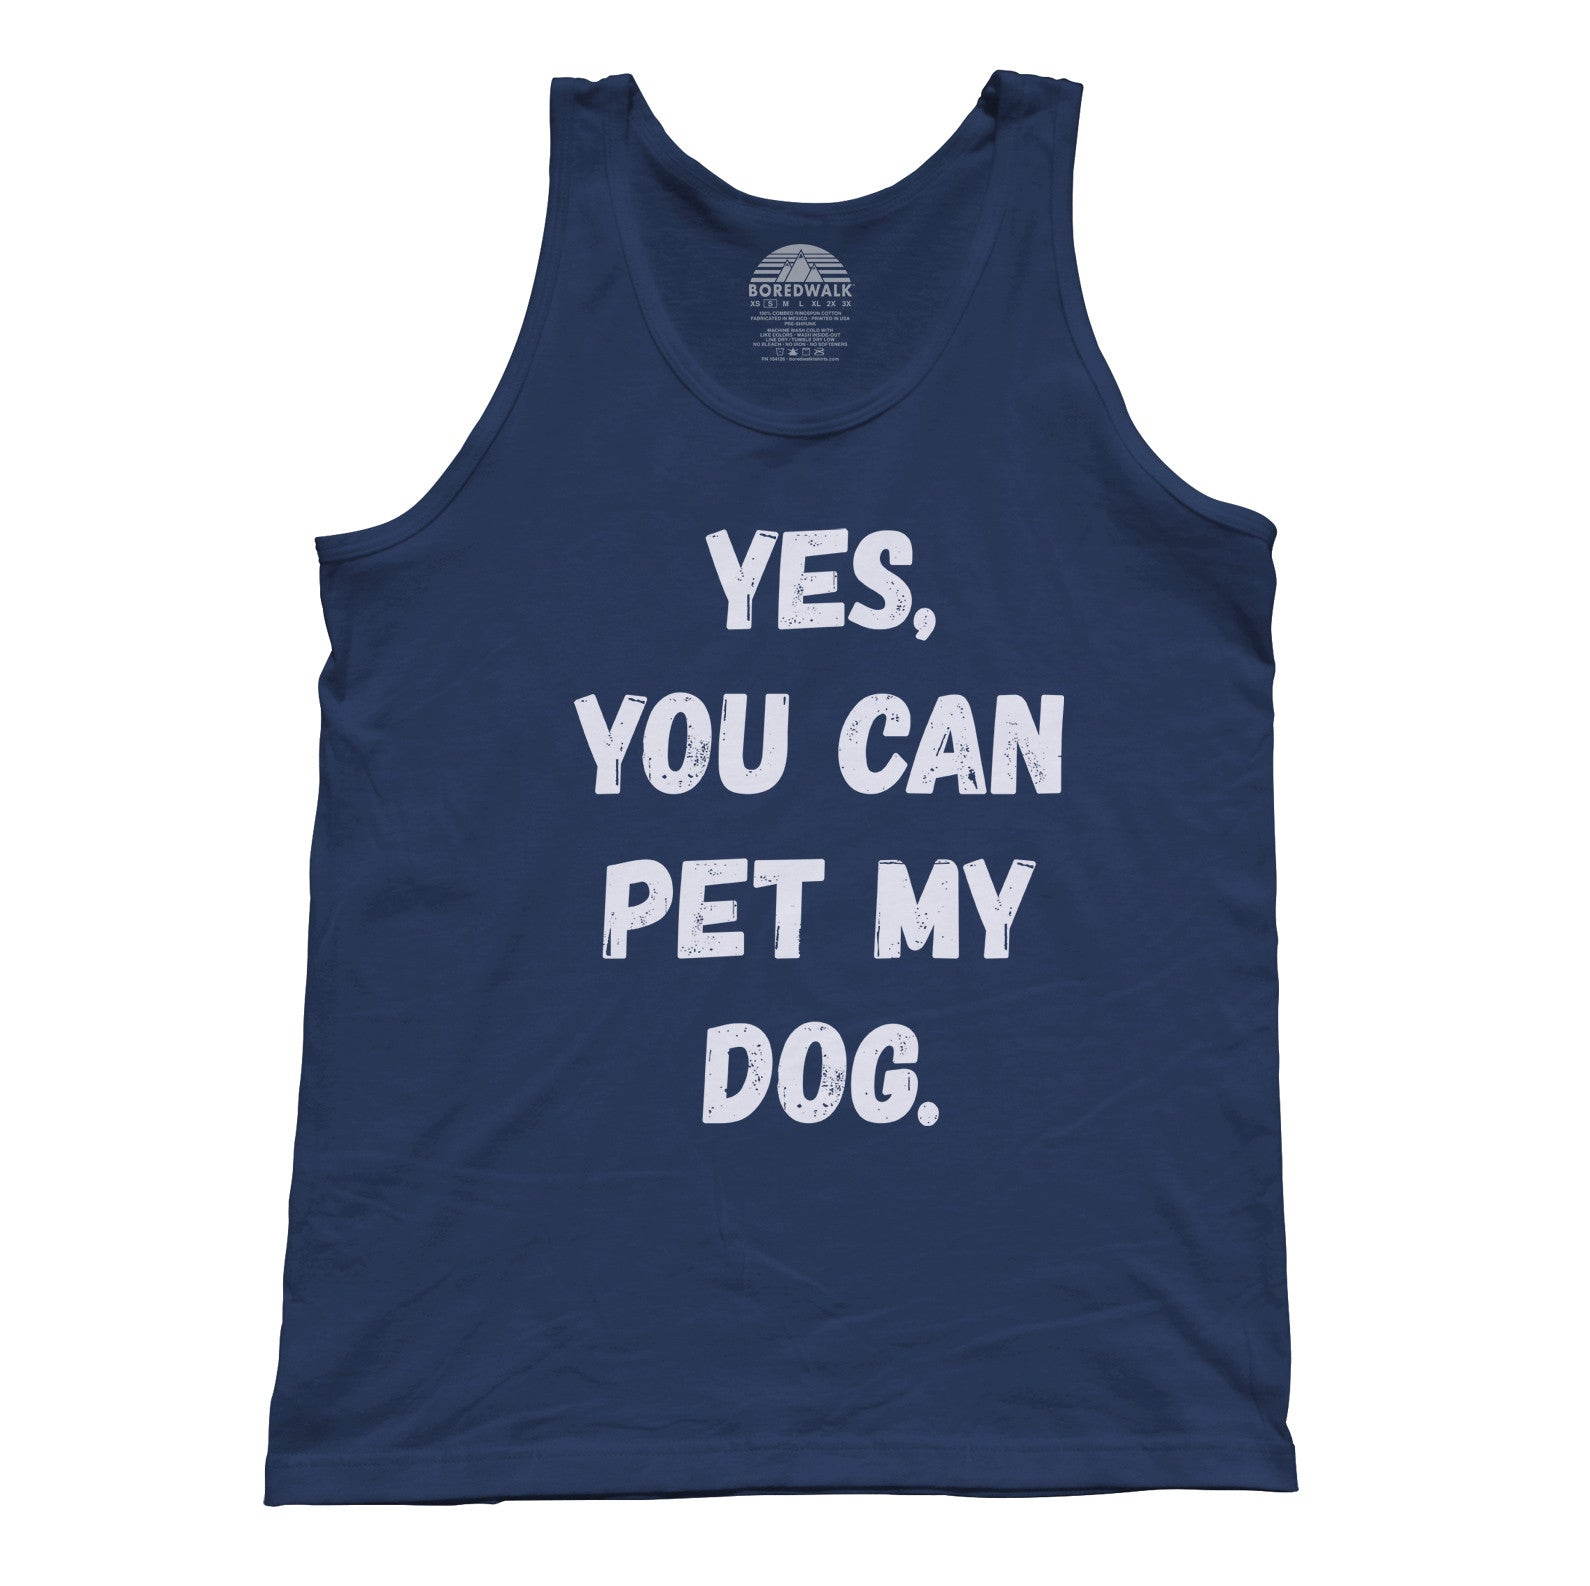 Unisex Yes You Can Pet My Dog Tank Top - Funny Dog Owner Shirt